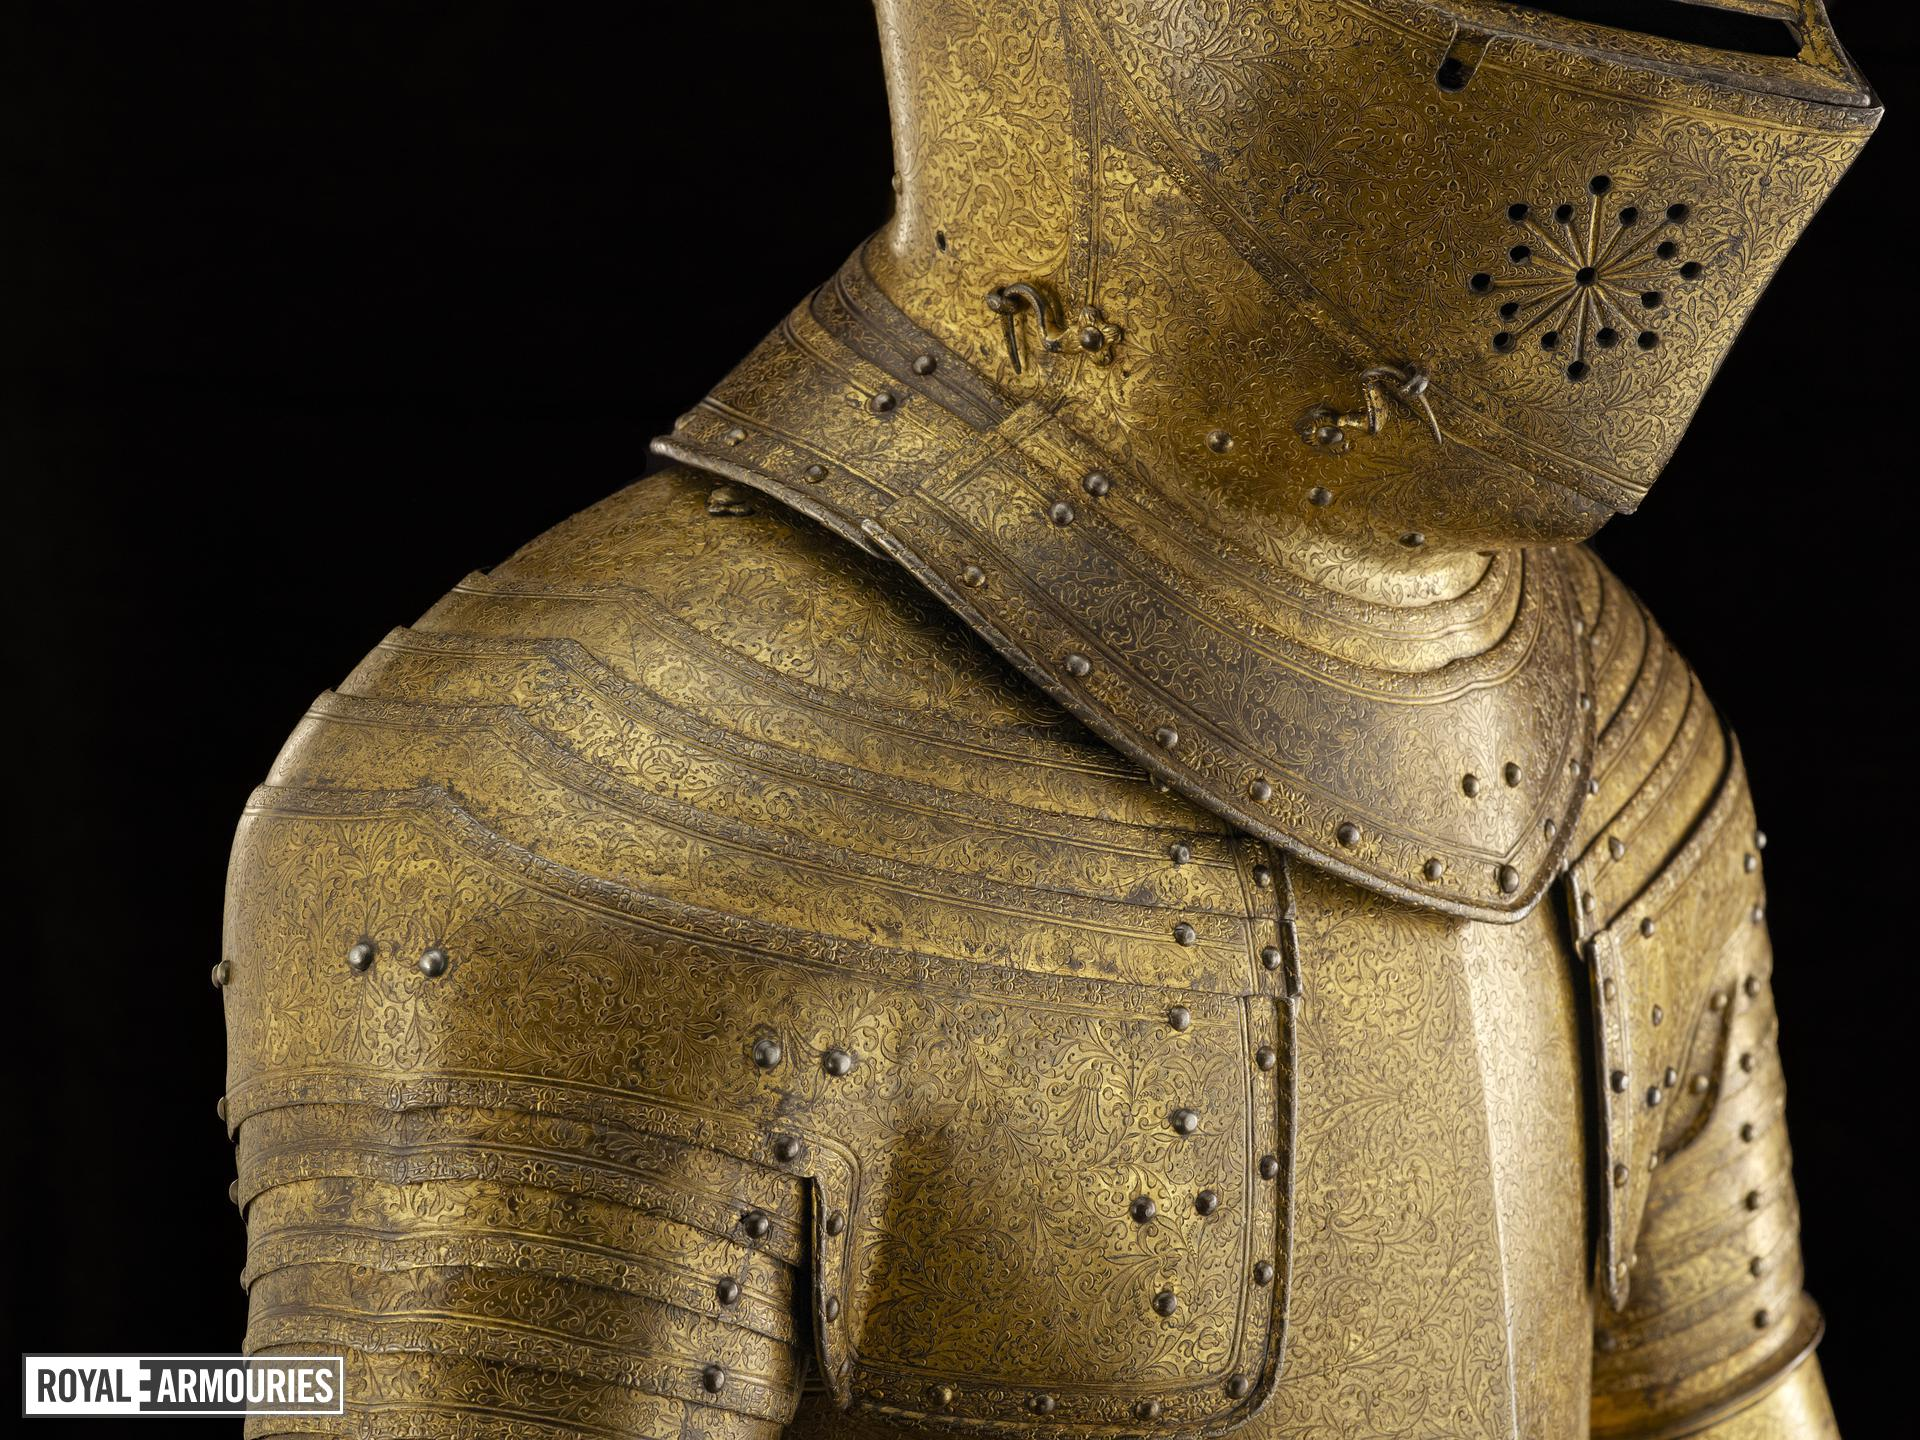 Armour of King Charles I, made for Henry Prince of Wales